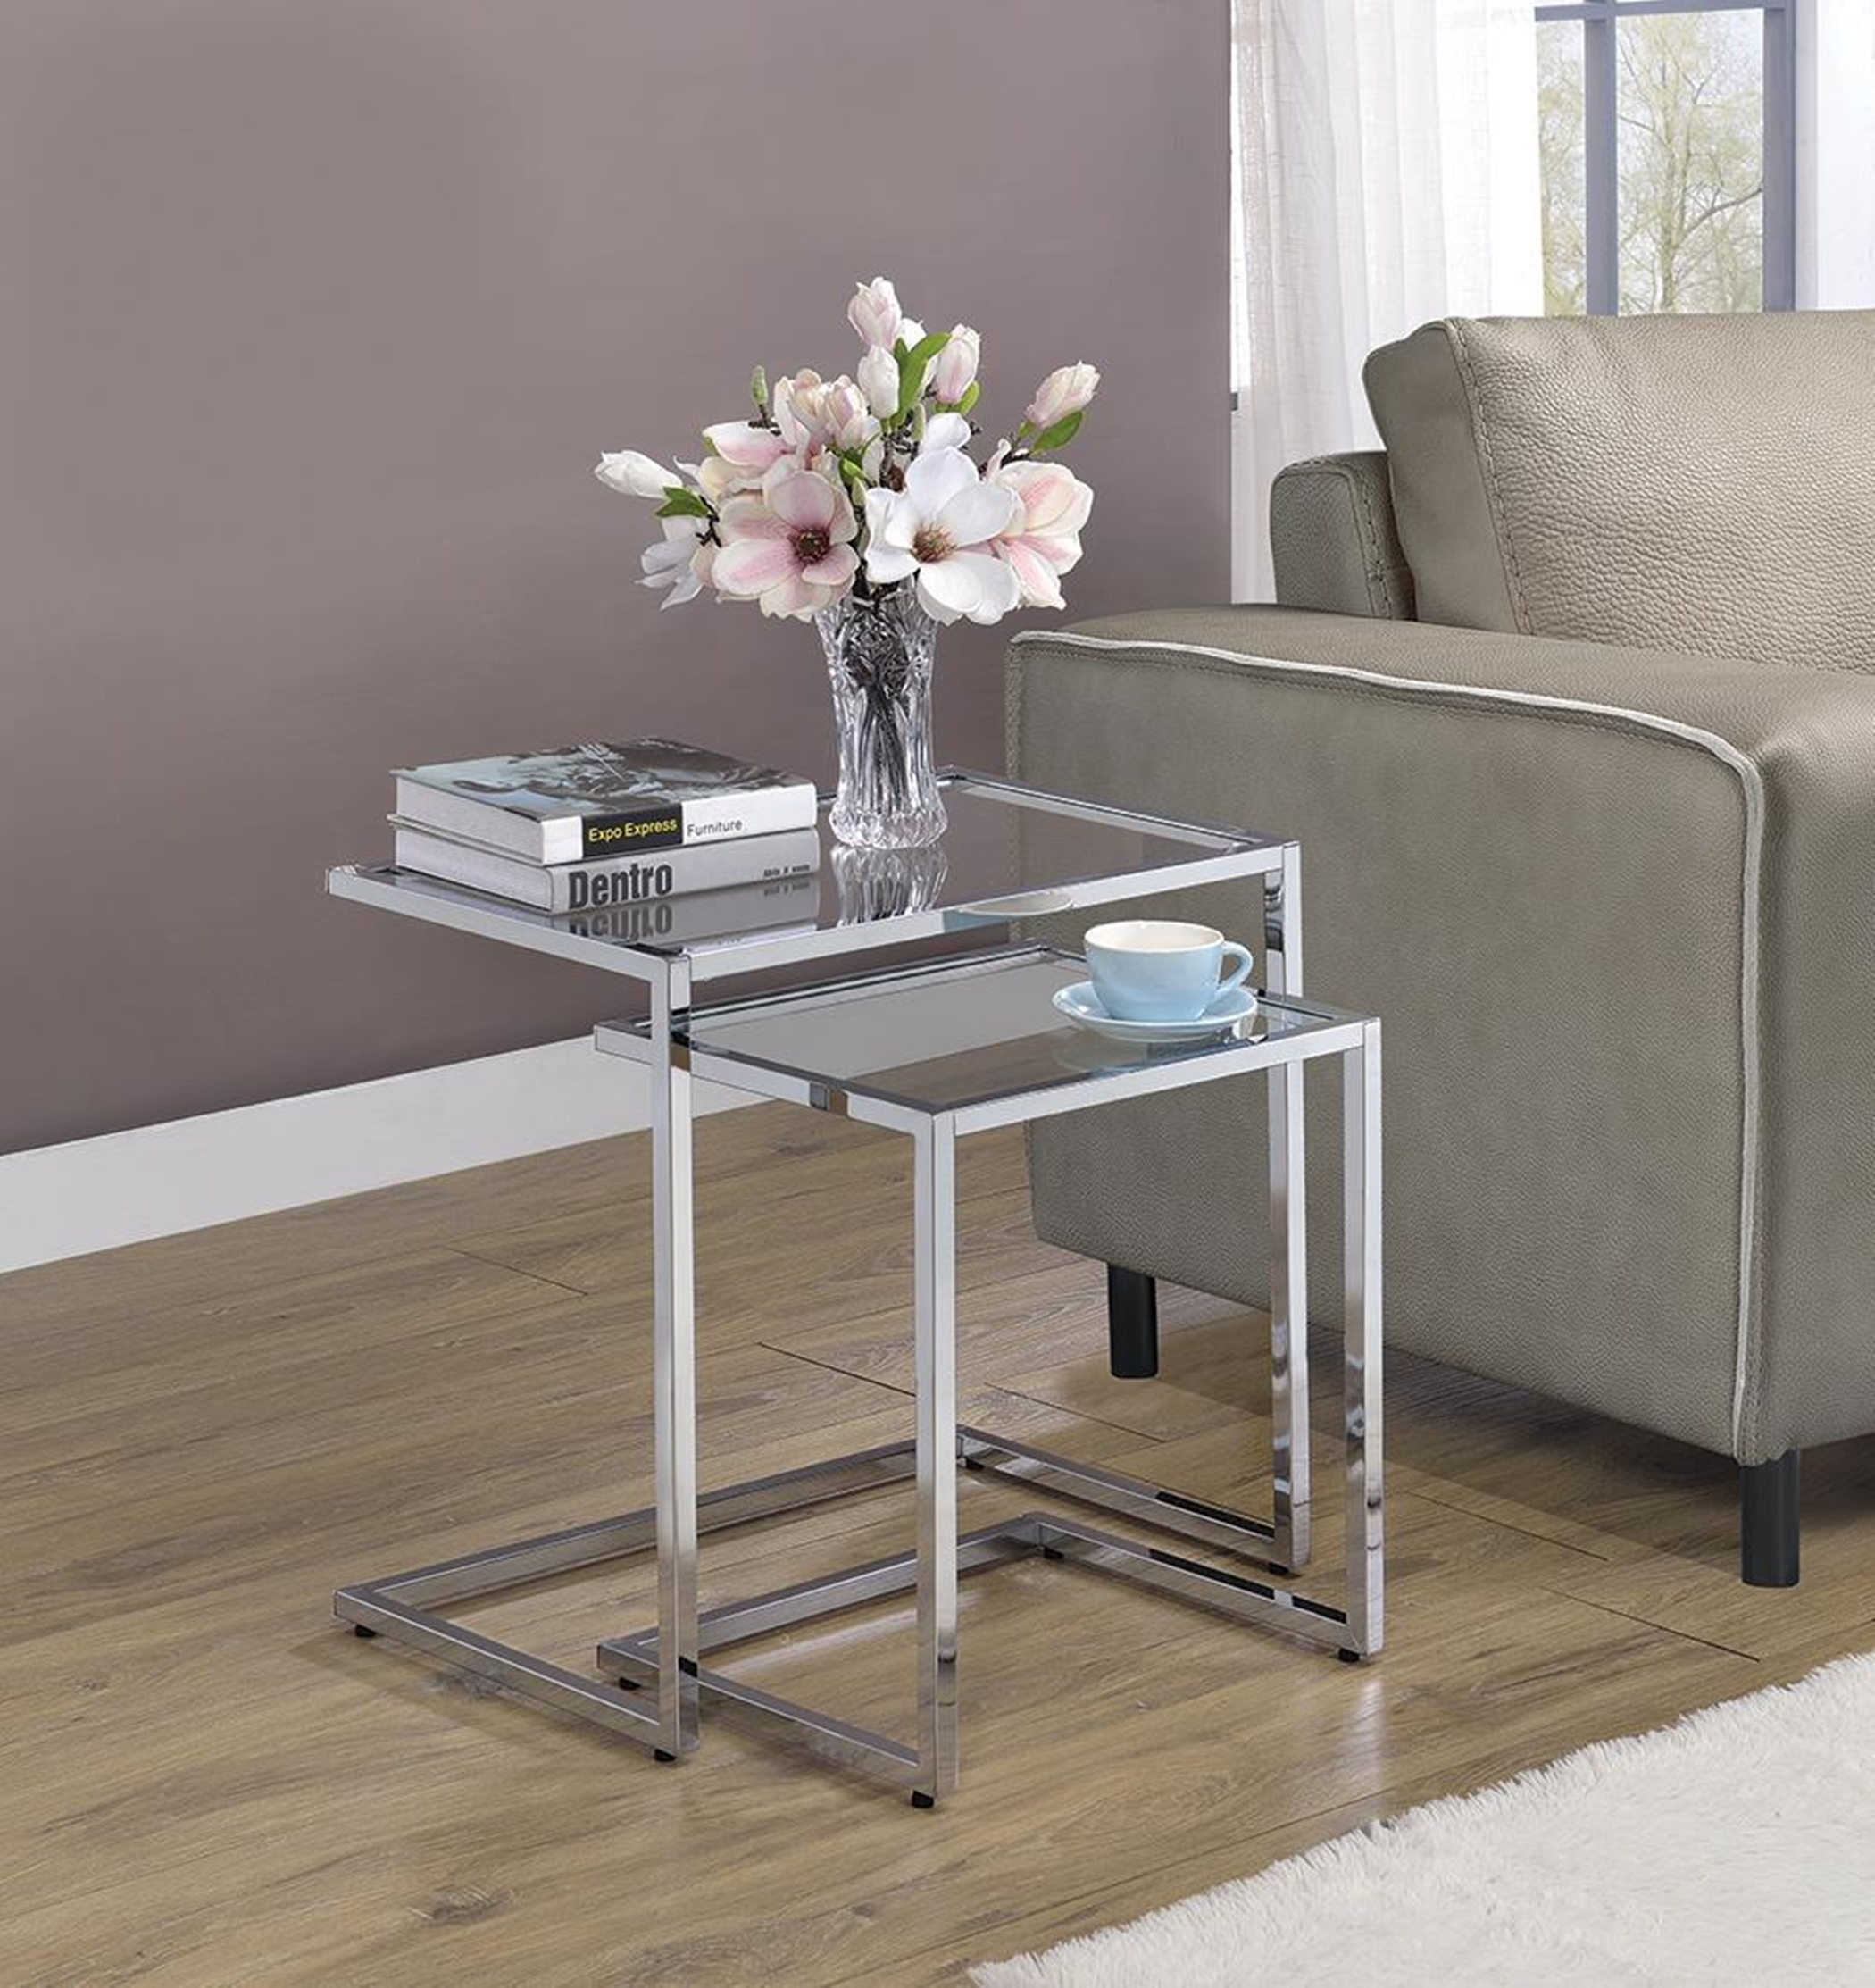 931126 - 2pcs Nesting Table